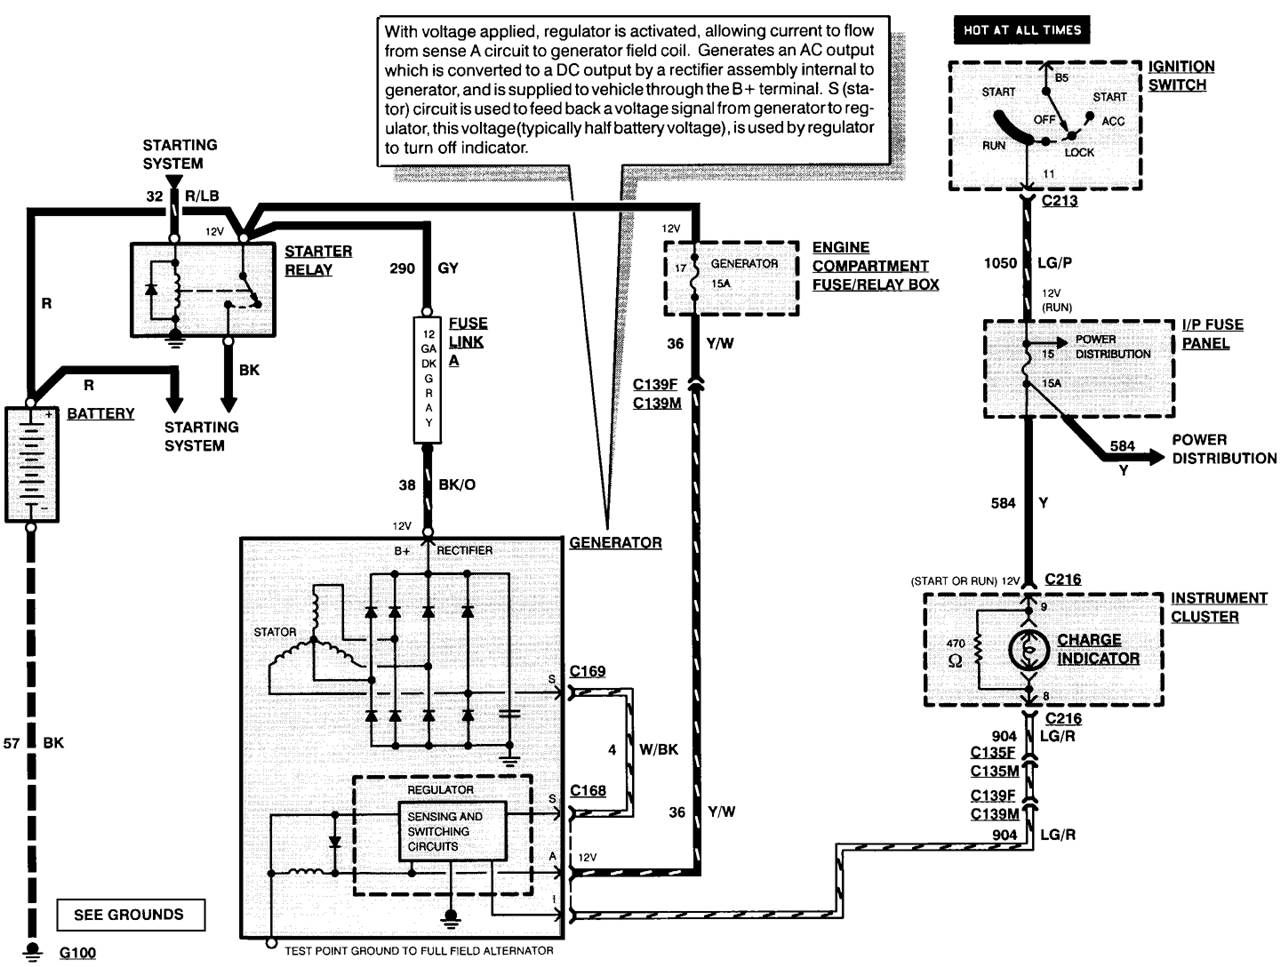 Ford alternator wiring diagram internal regulator ford regulator diagram ford 8n regulator diagram \u2022 wiring diagram  at alyssarenee.co